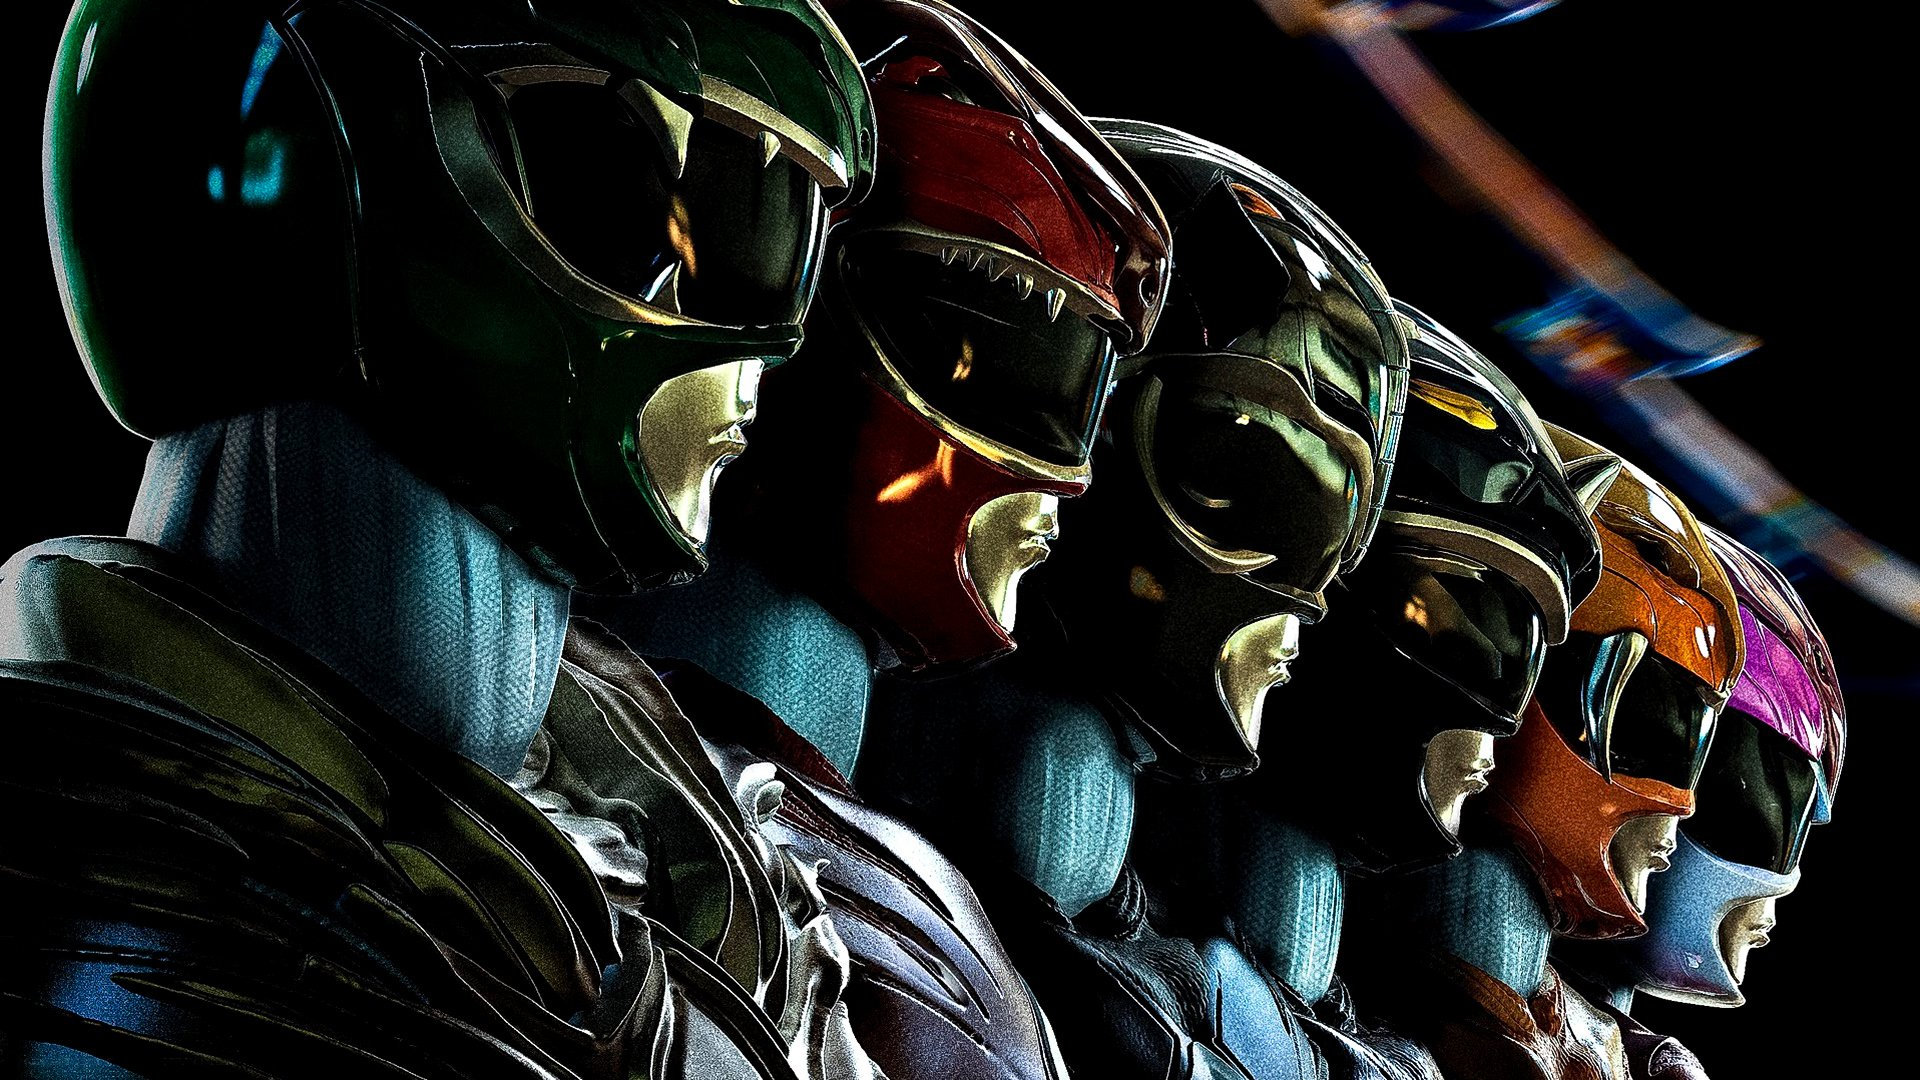 Power Rangers 2017 Hd Wallpaper Background Image 1920x1080